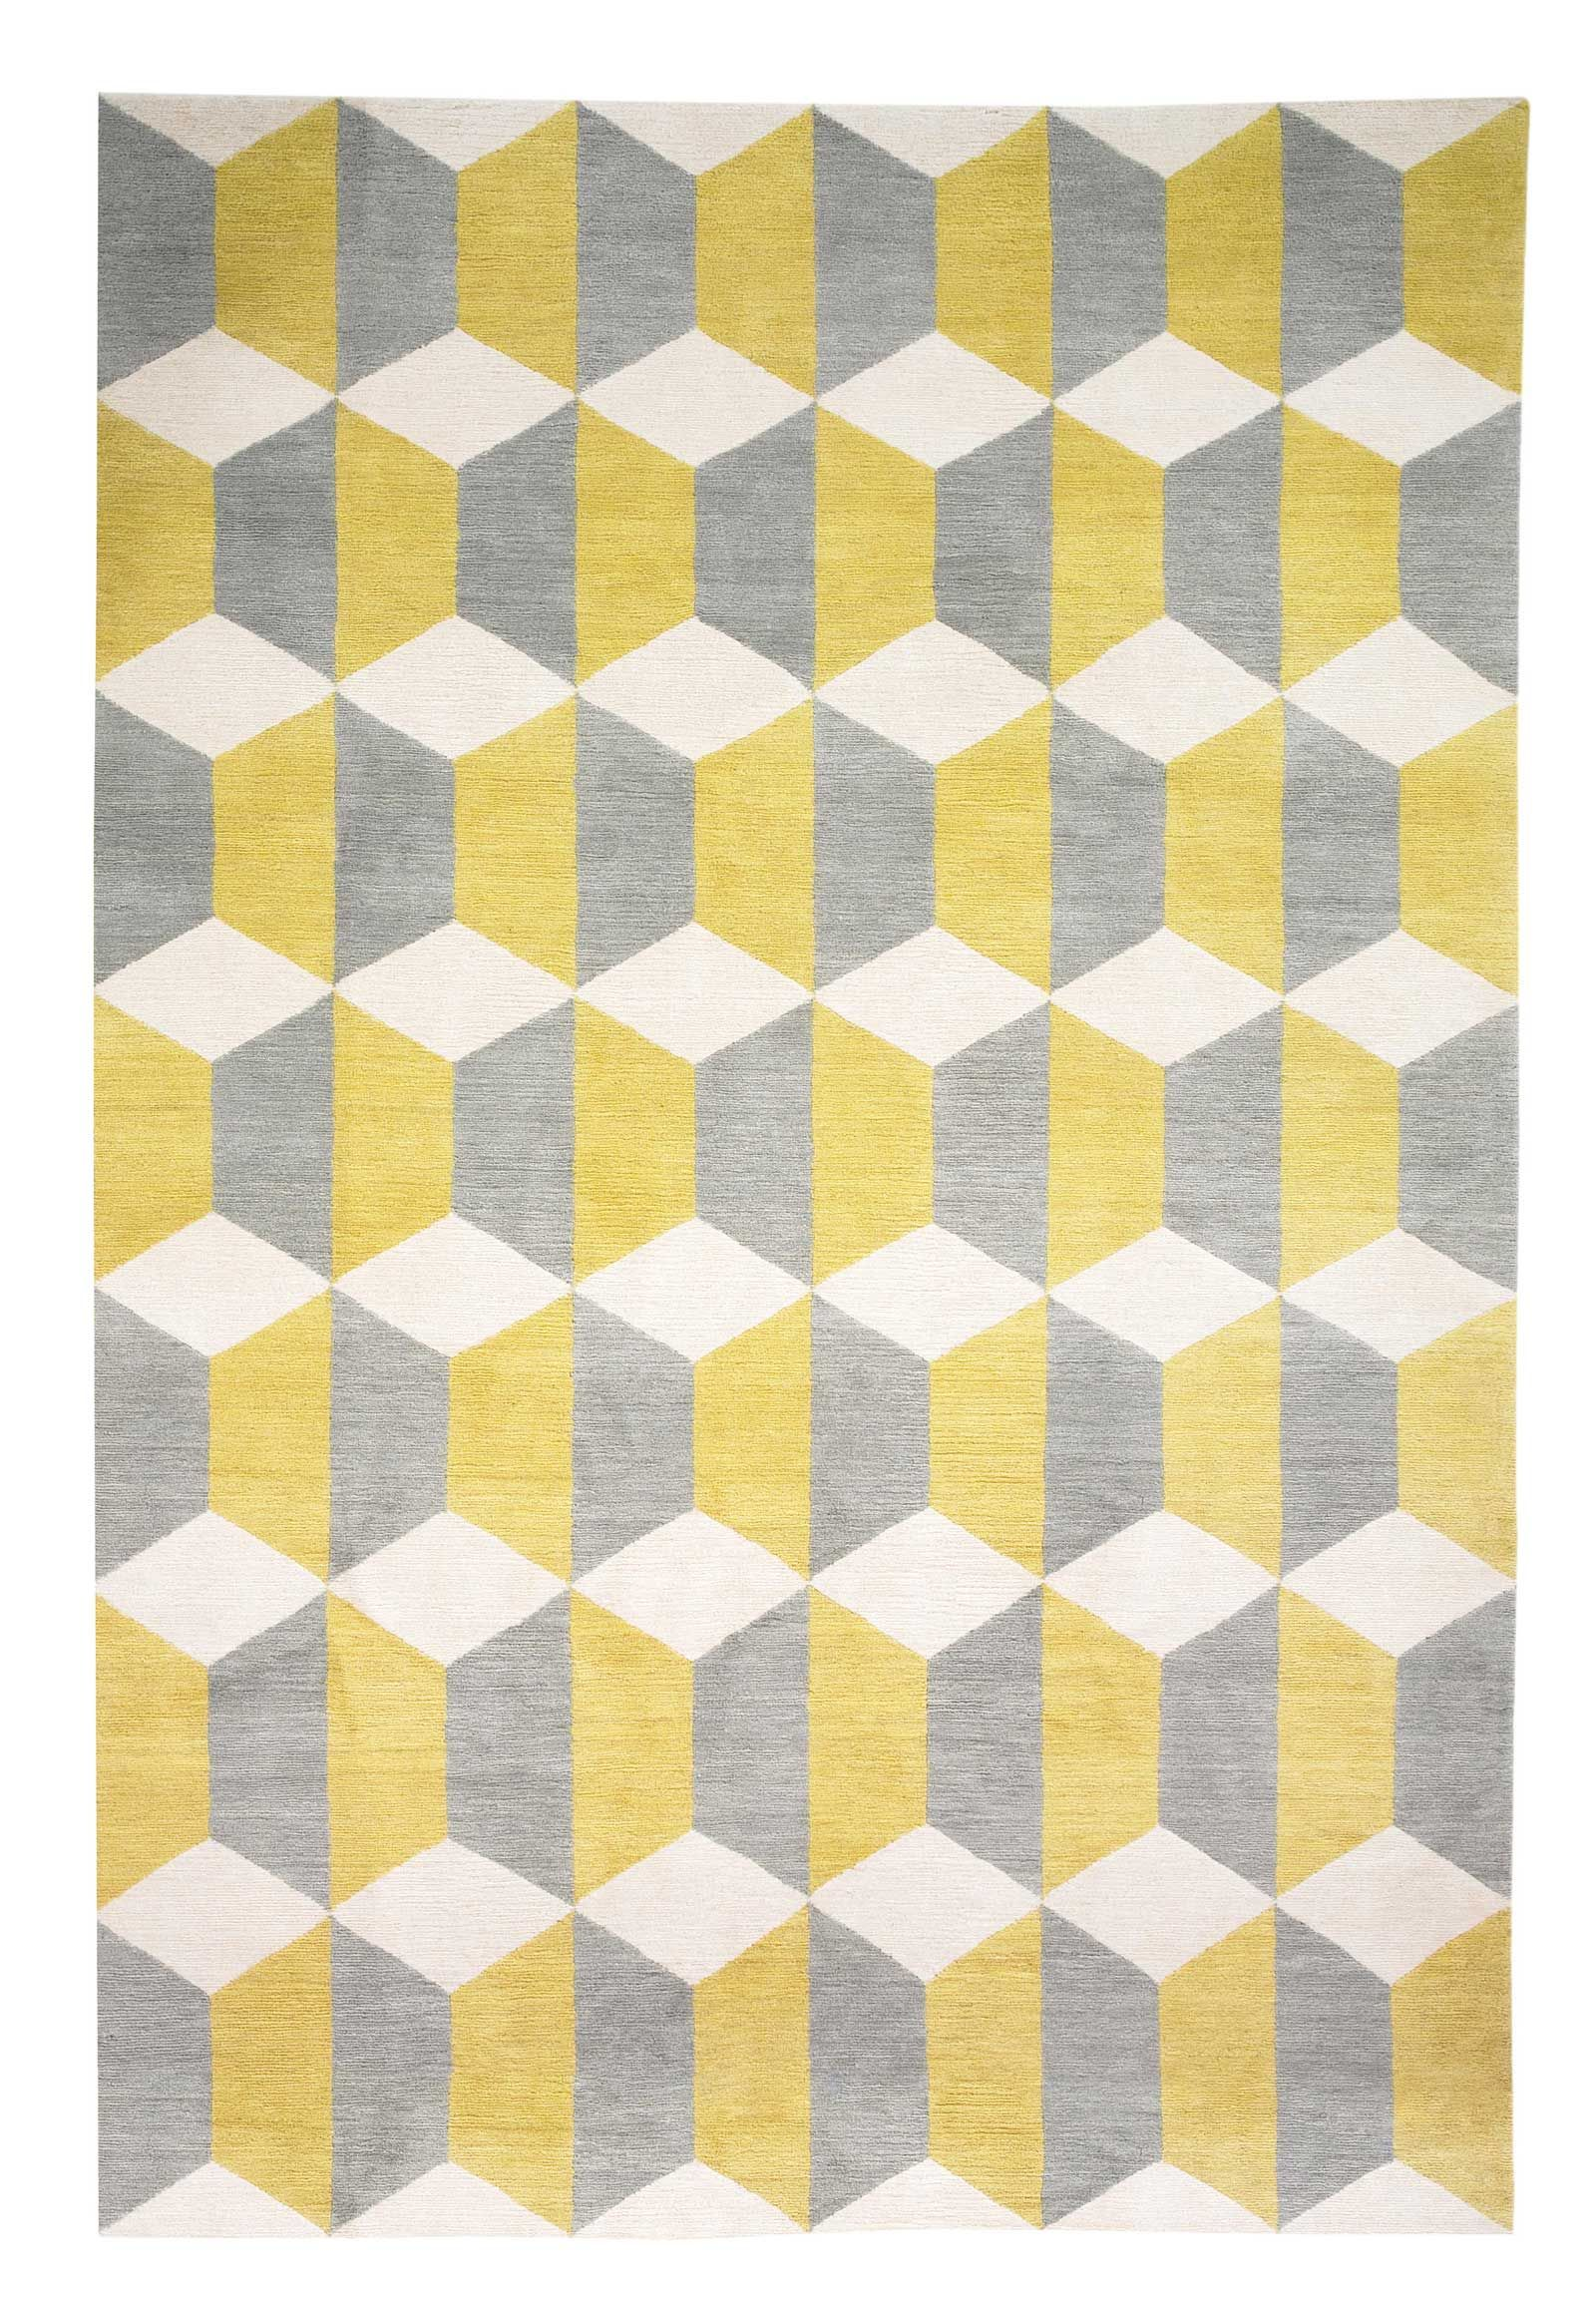 Chiesa Yellow By Suzanne Sharp Wool Contemporary Hand